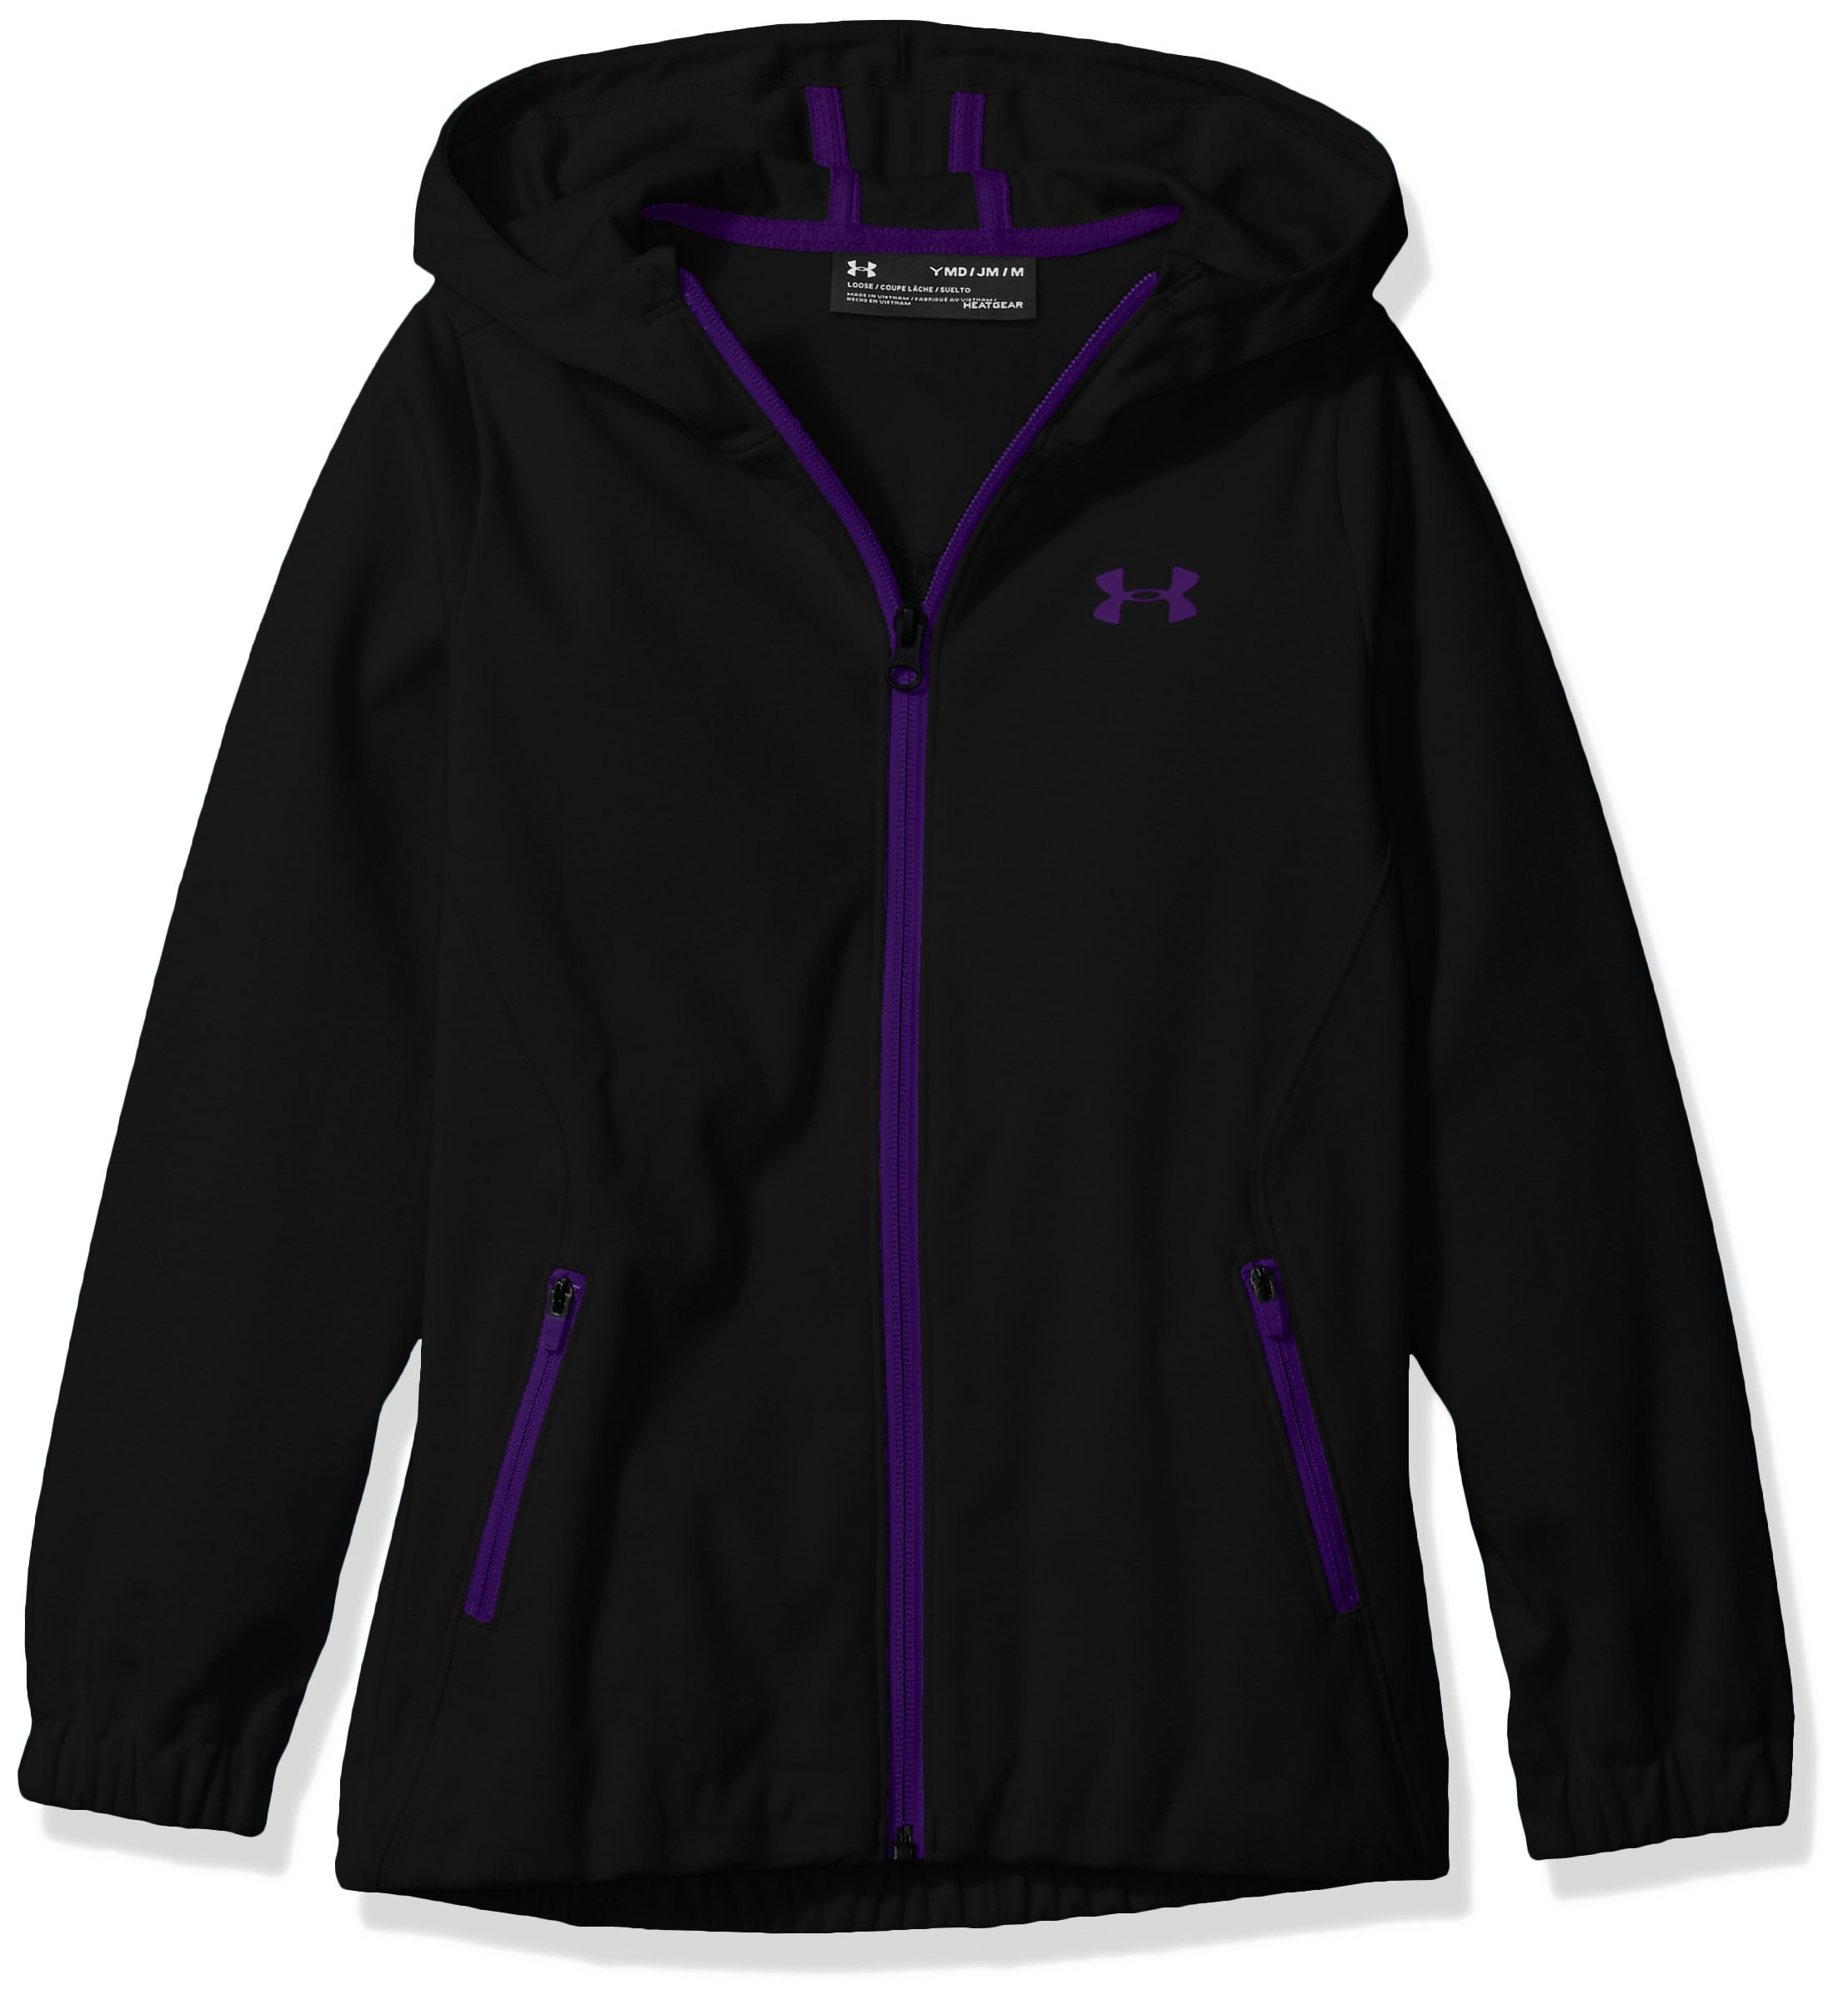 Under Armour Girls' Spring Swacket, Black , Youth X-Large by Under Armour